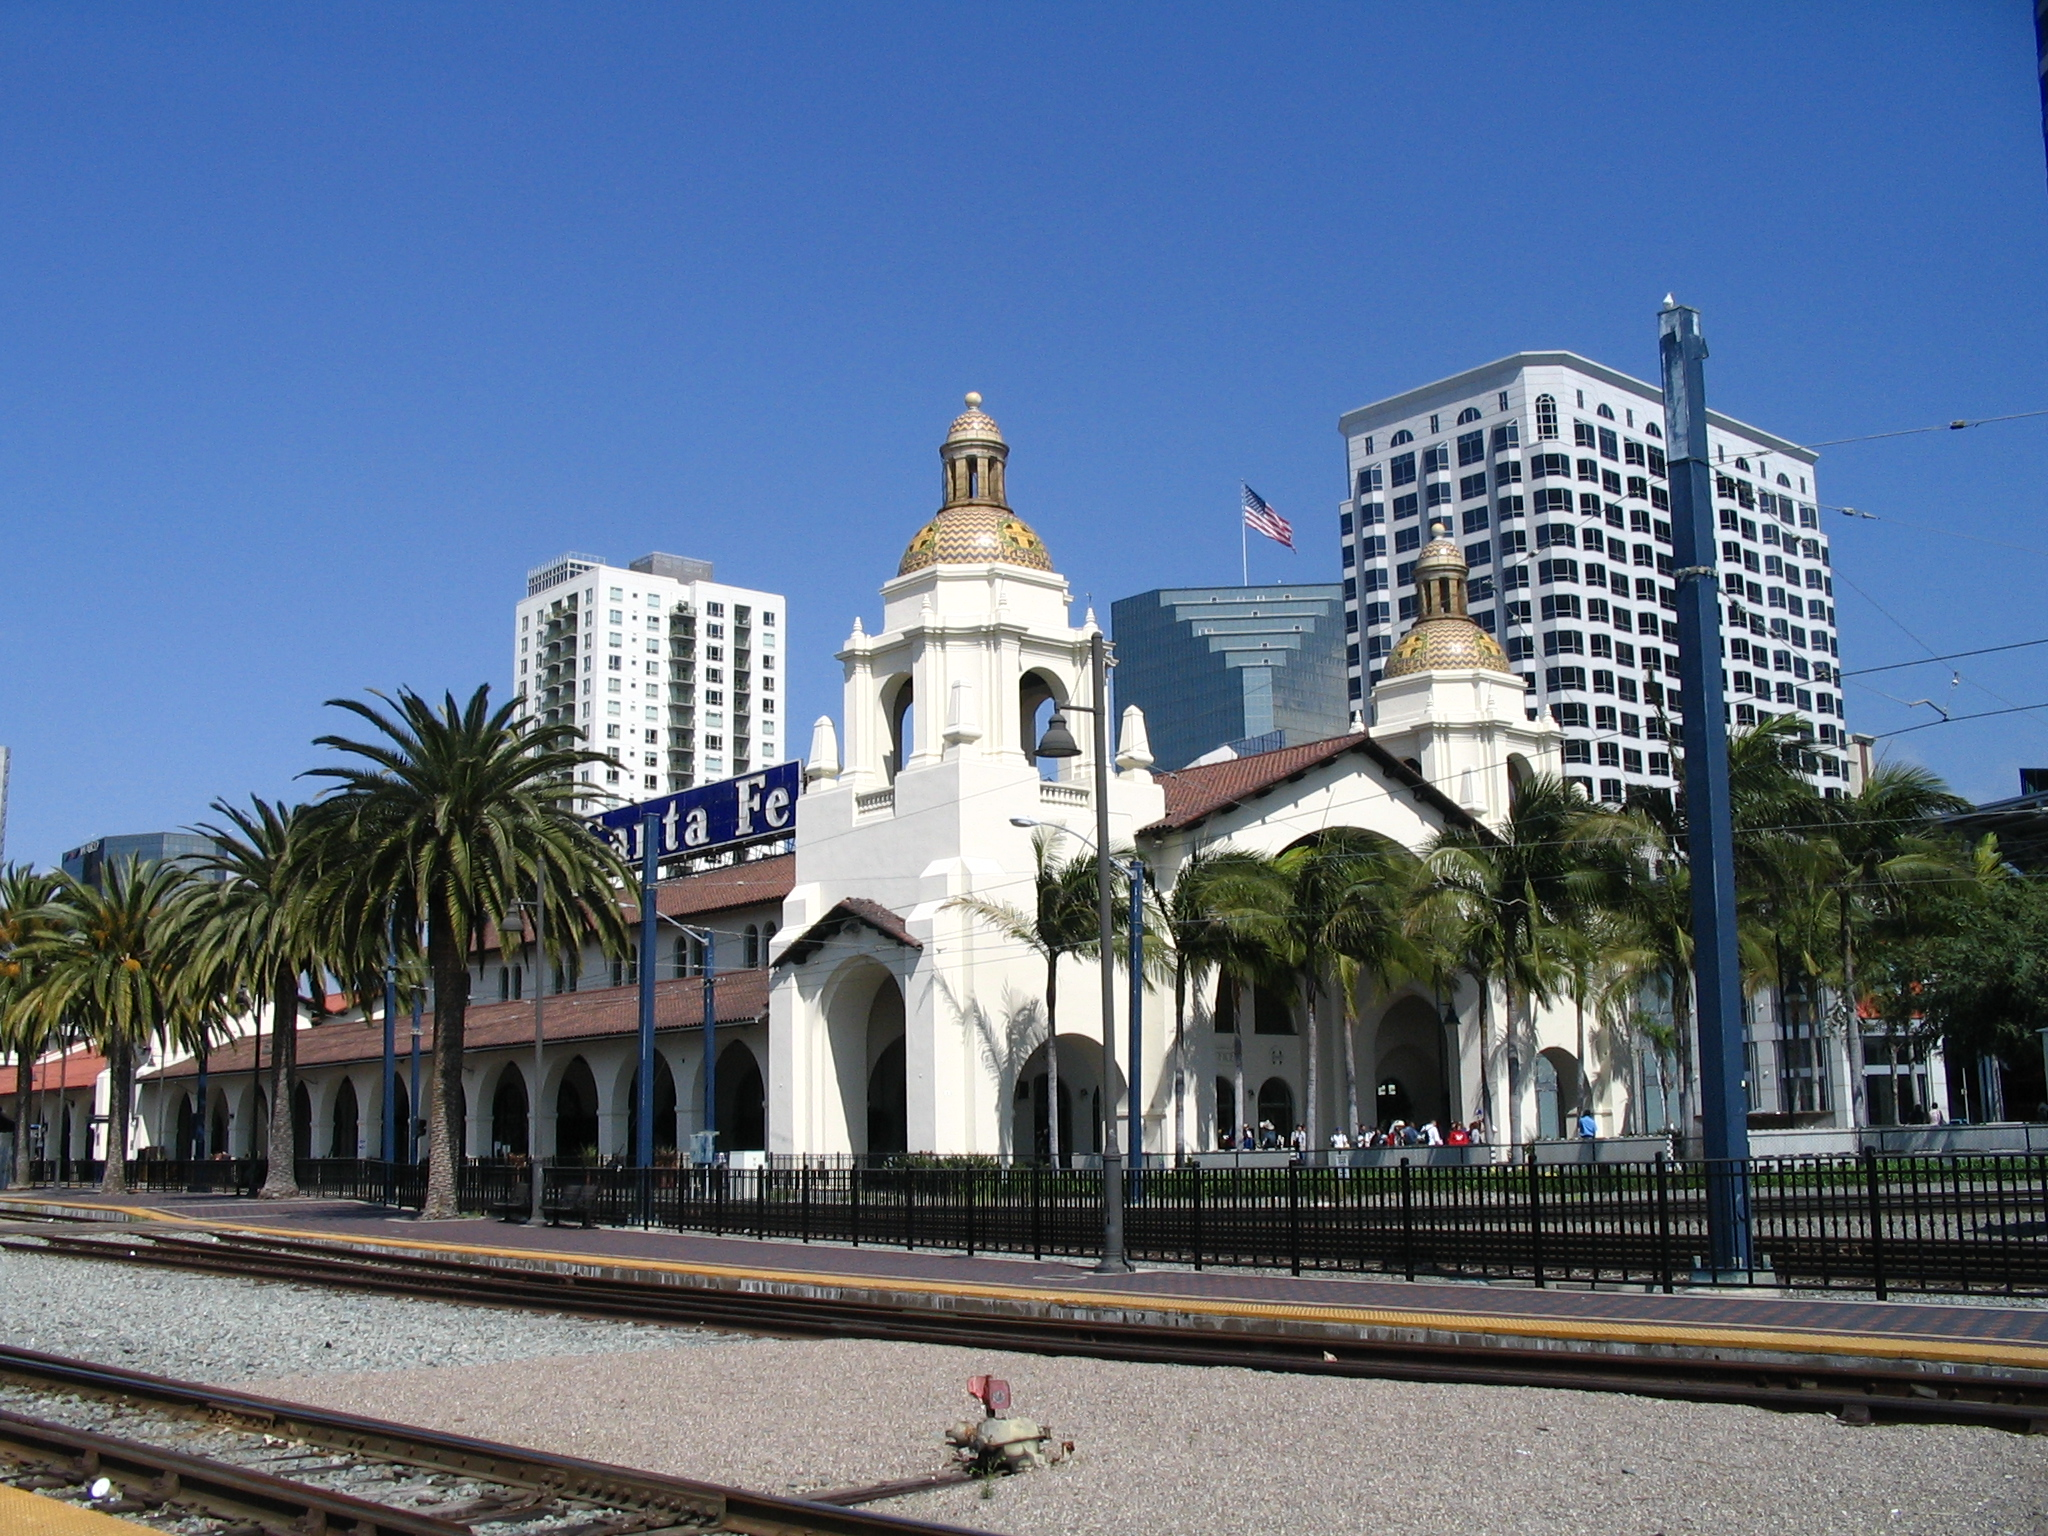 The Santa Fe Depot, which is on the National Register of Historic Places, is one of Amtrak's busiest California stations.